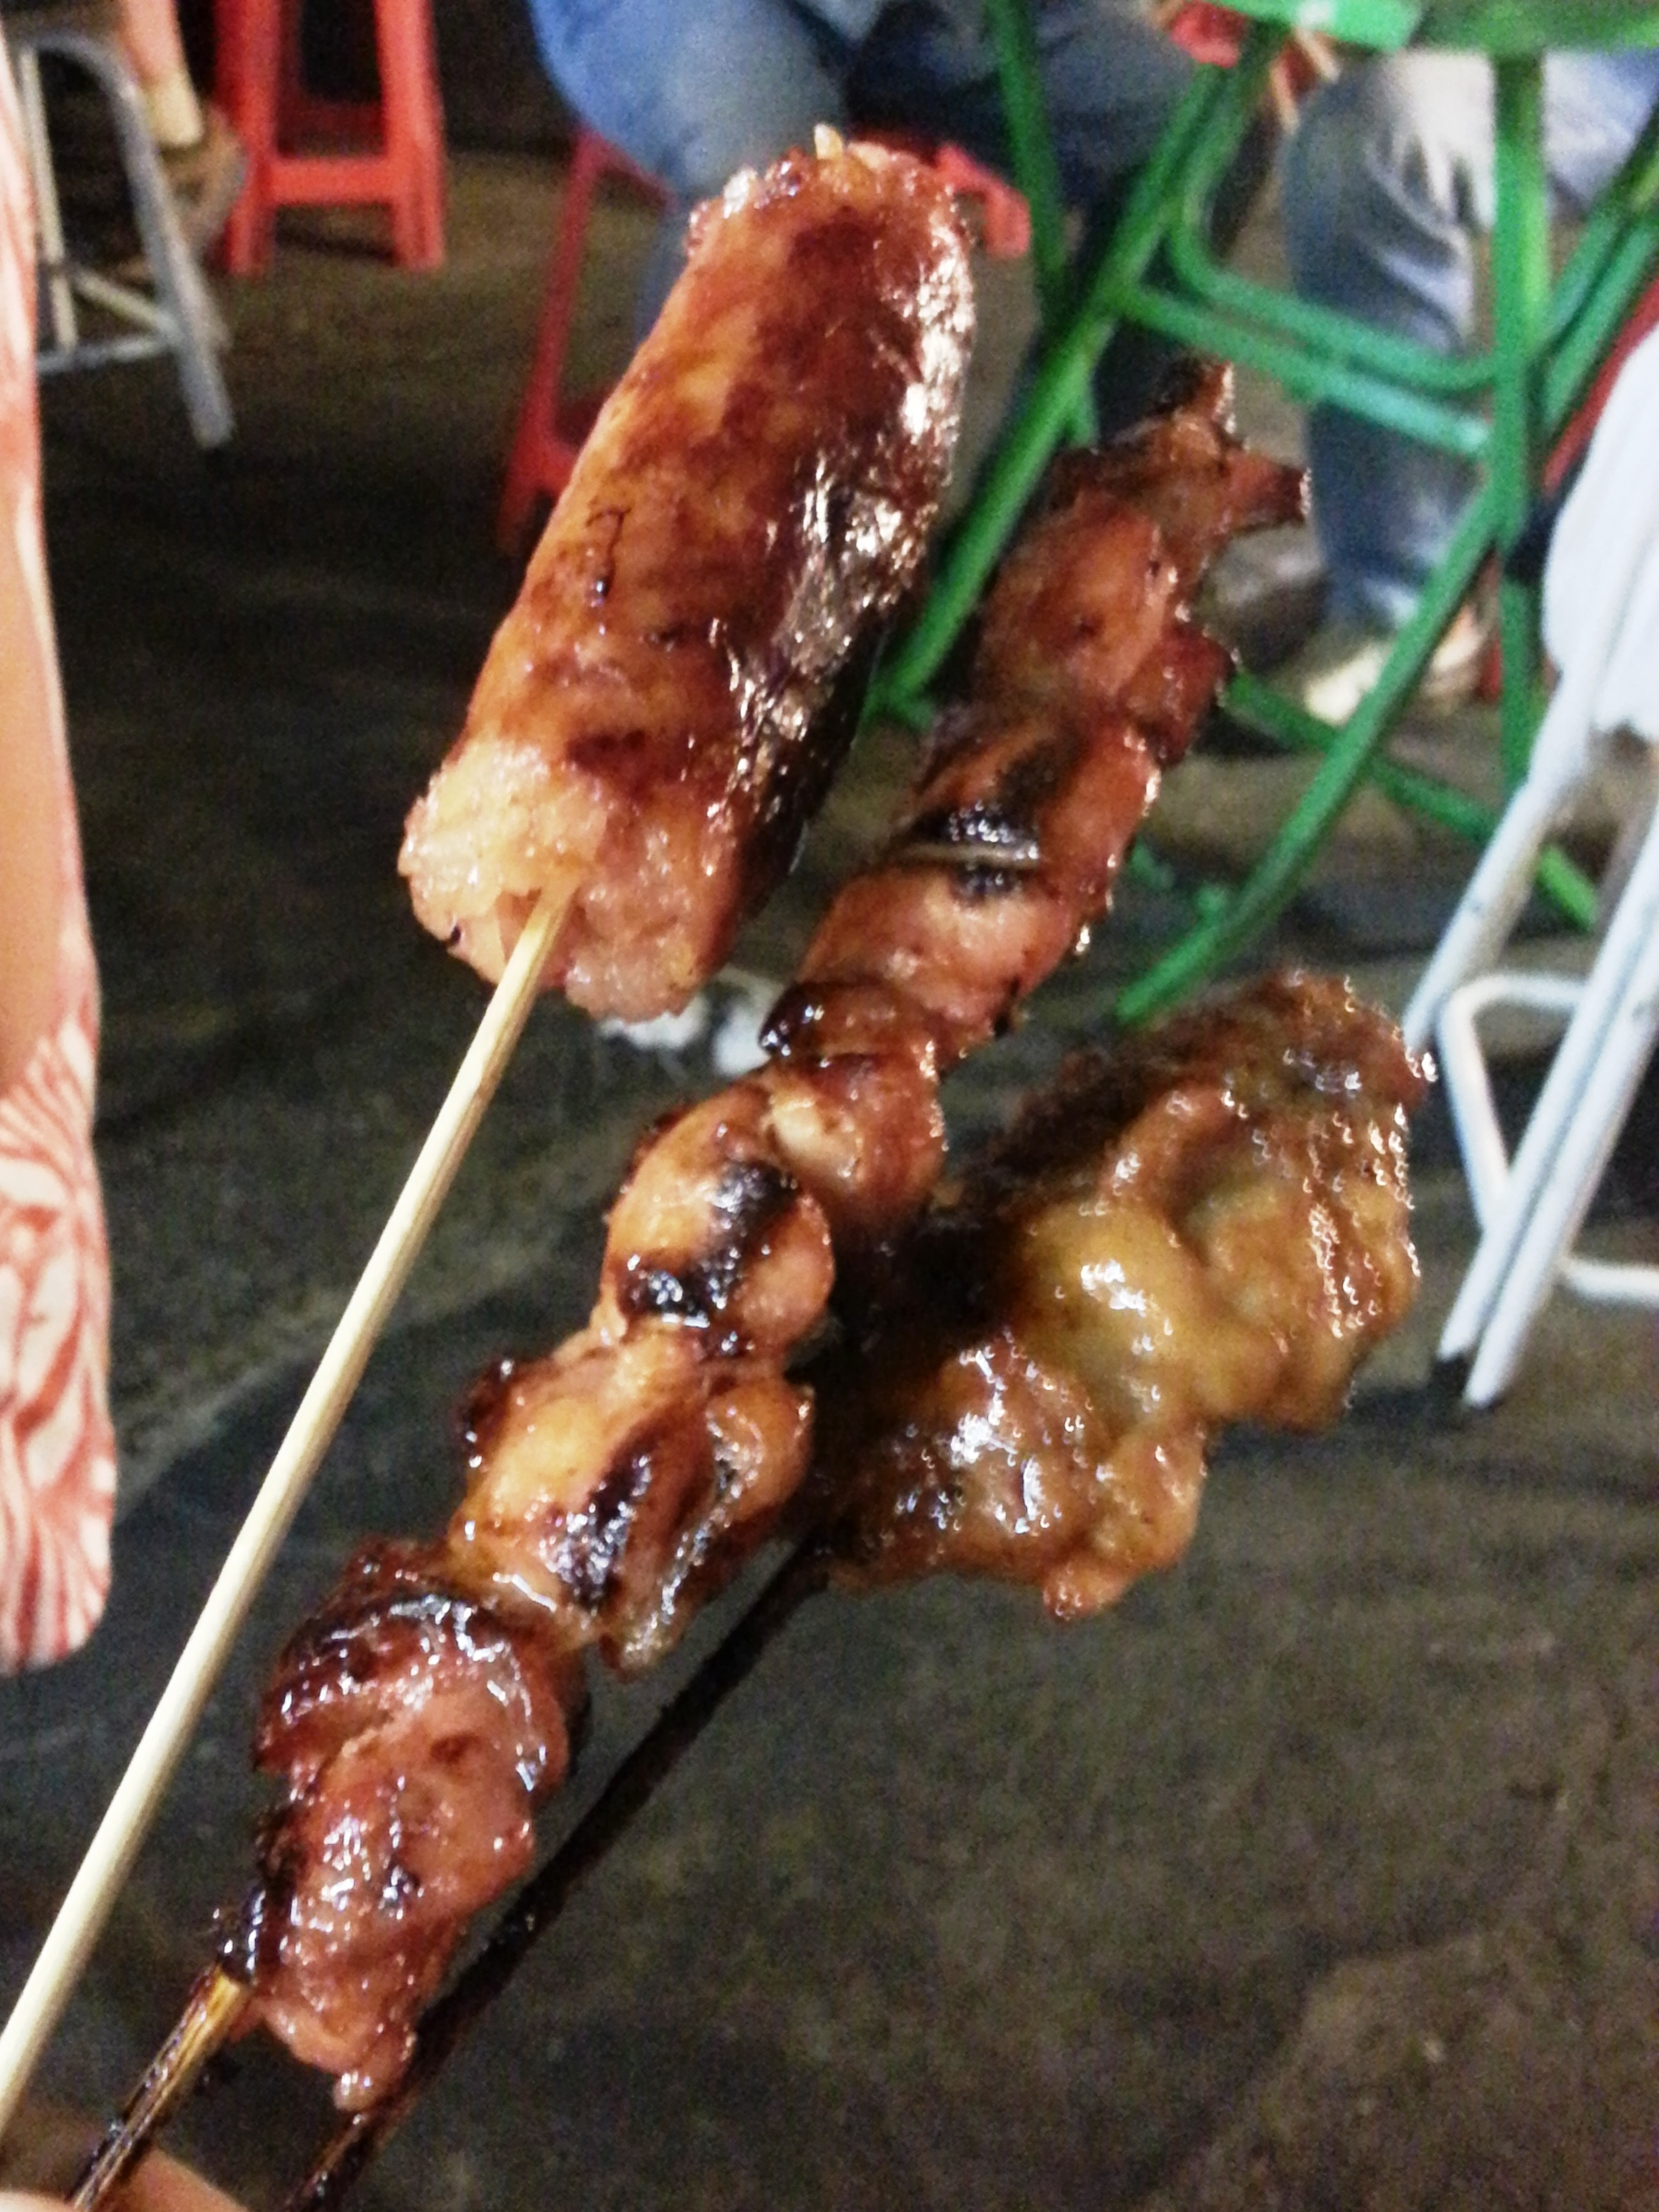 Bangkok street food - meat on a stick